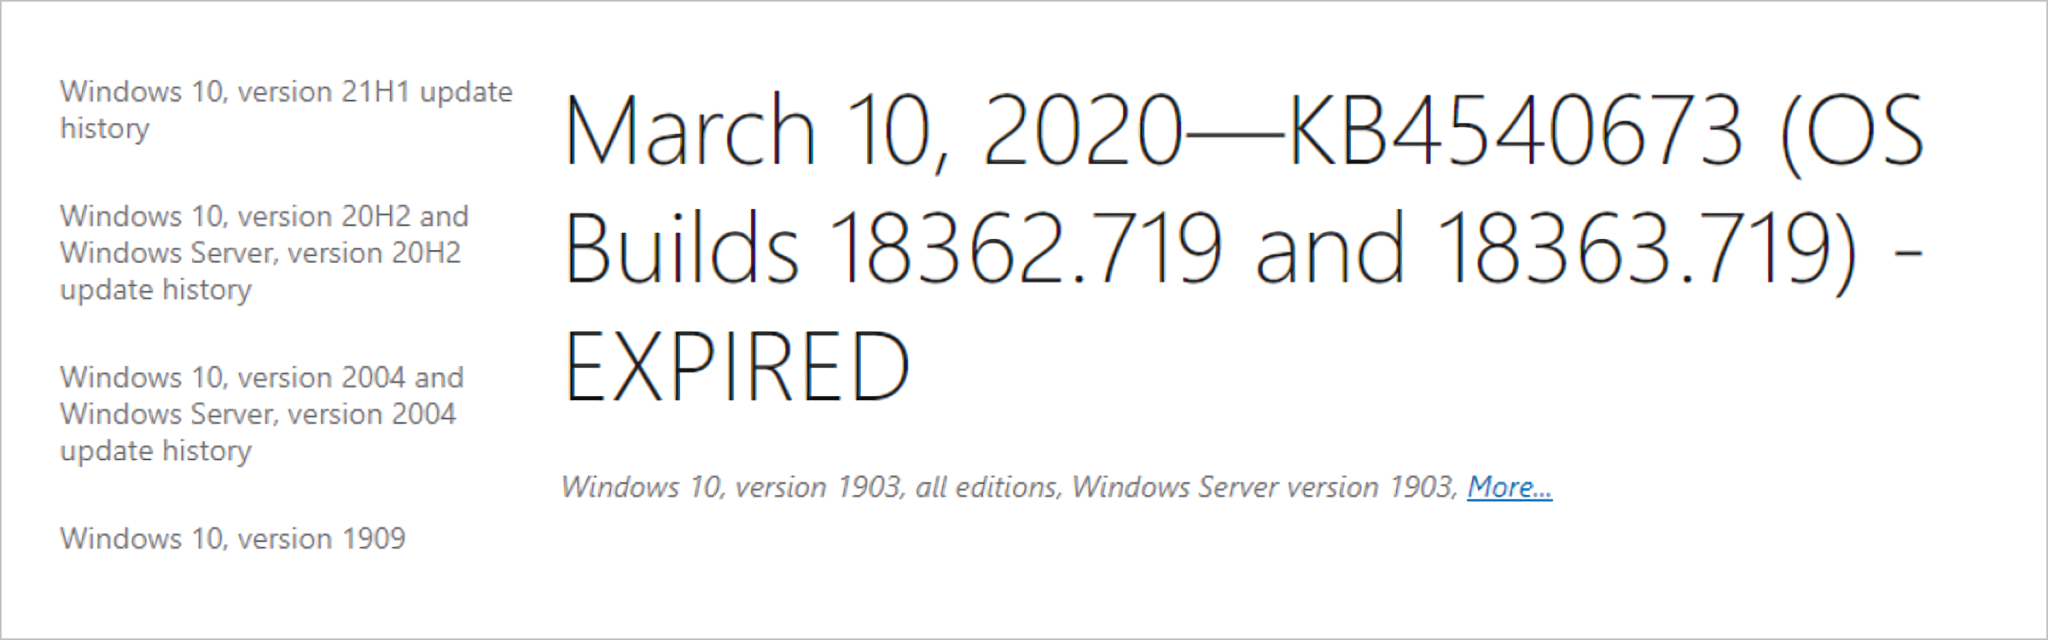 Old Windows updates will now be expired to improve performance and user experience